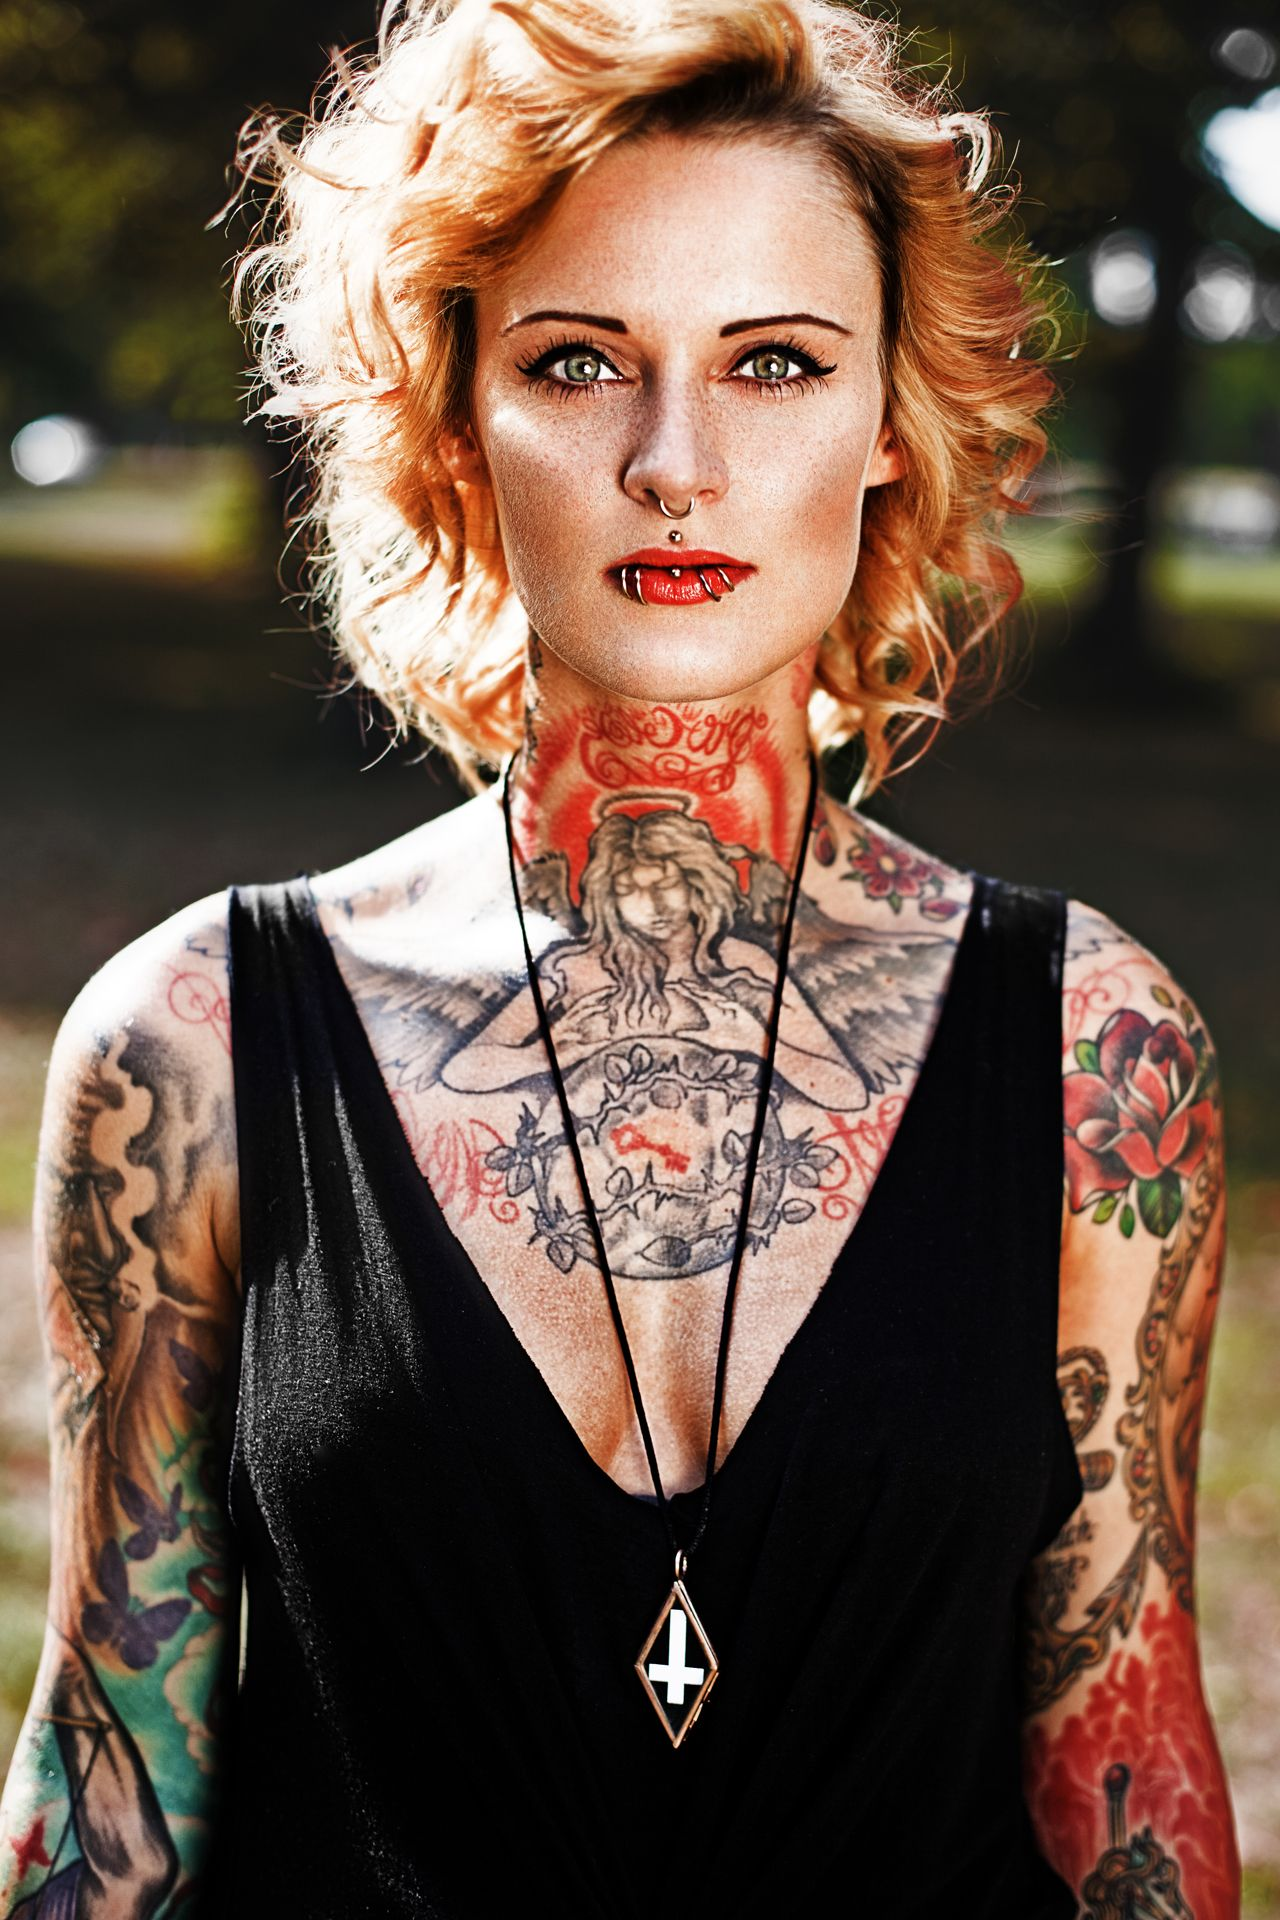 Jennifer Weist Musik Pinterest Rostock Tattooed